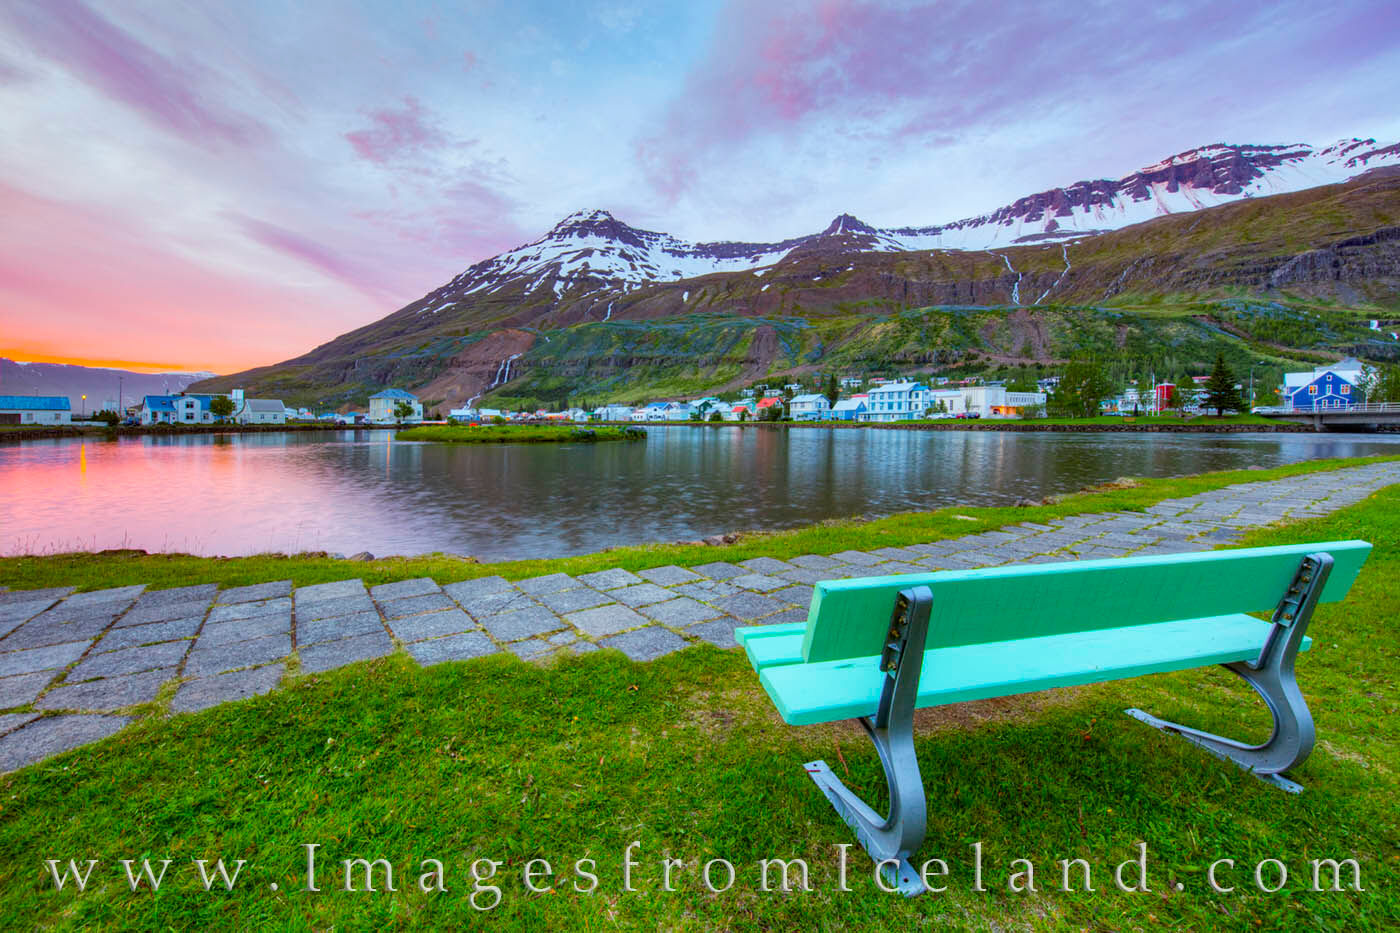 This bench was a nice place to sit for a while and appreciate the moment - where I was and what I'd seen - after I'd been driving...